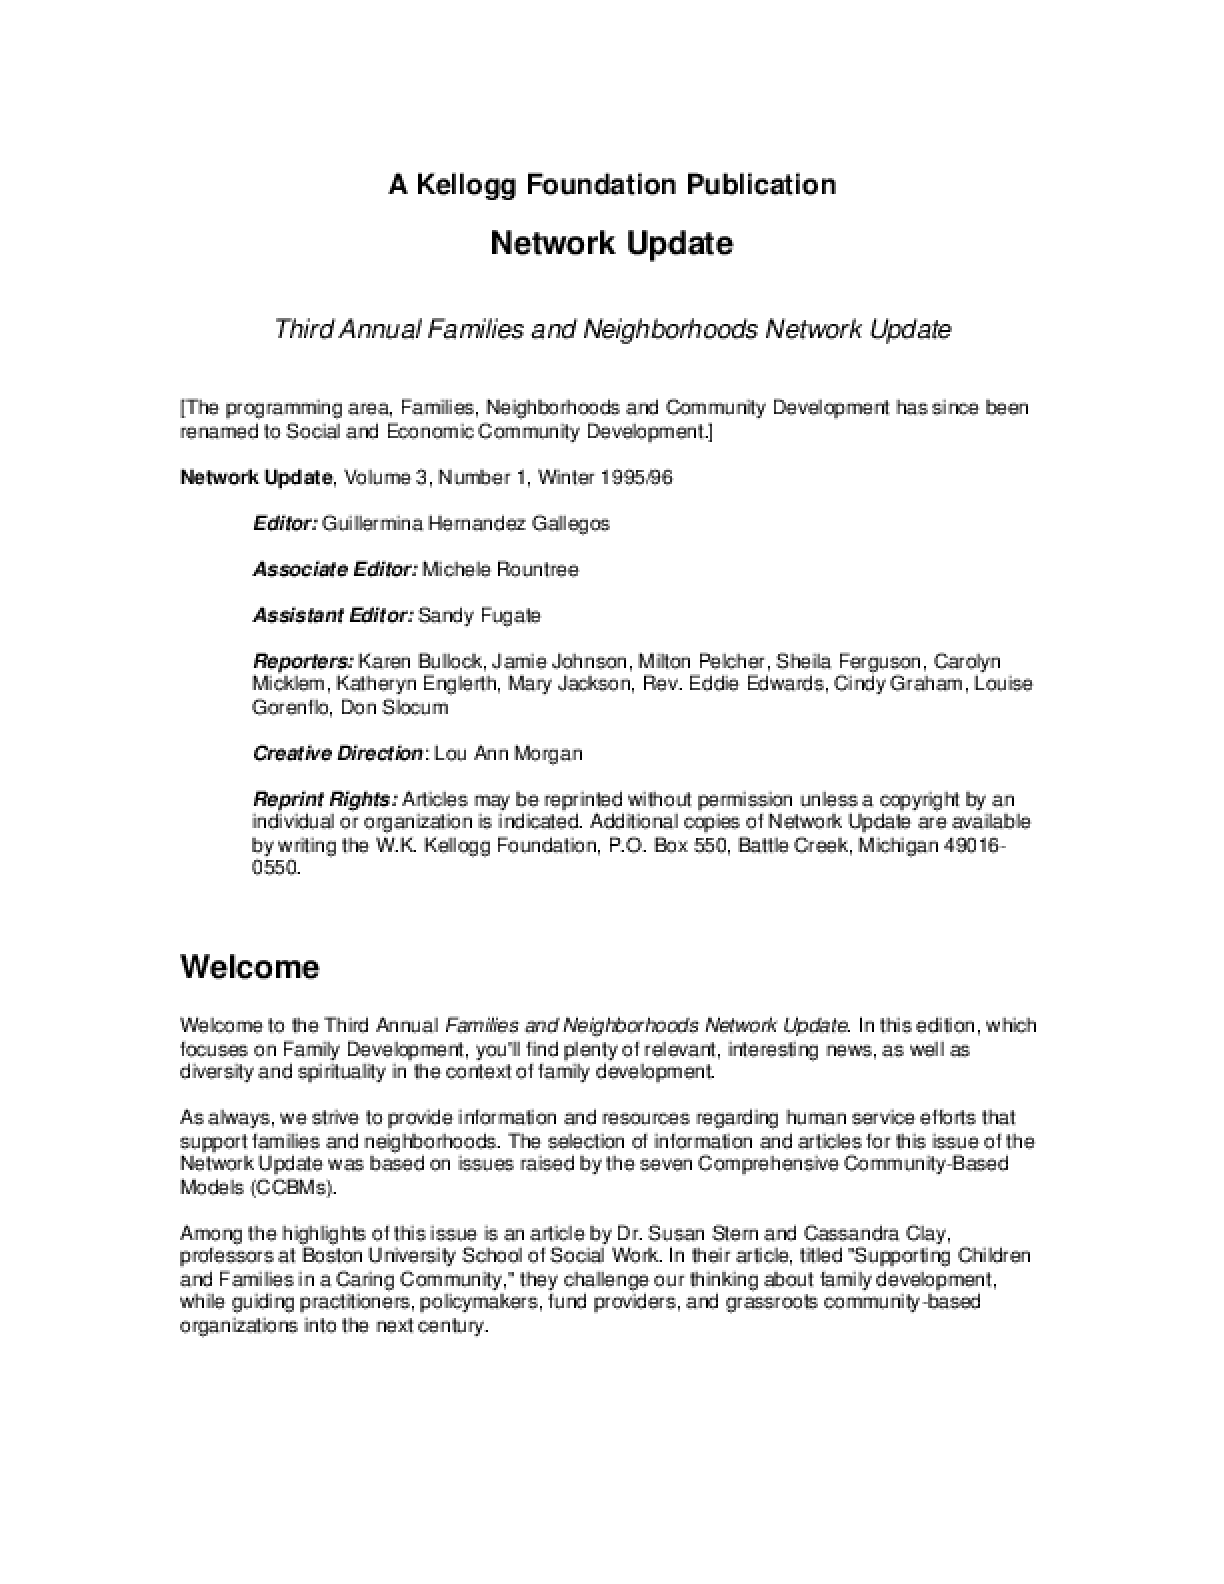 Third Annual Families and Neighborhoods Network Update